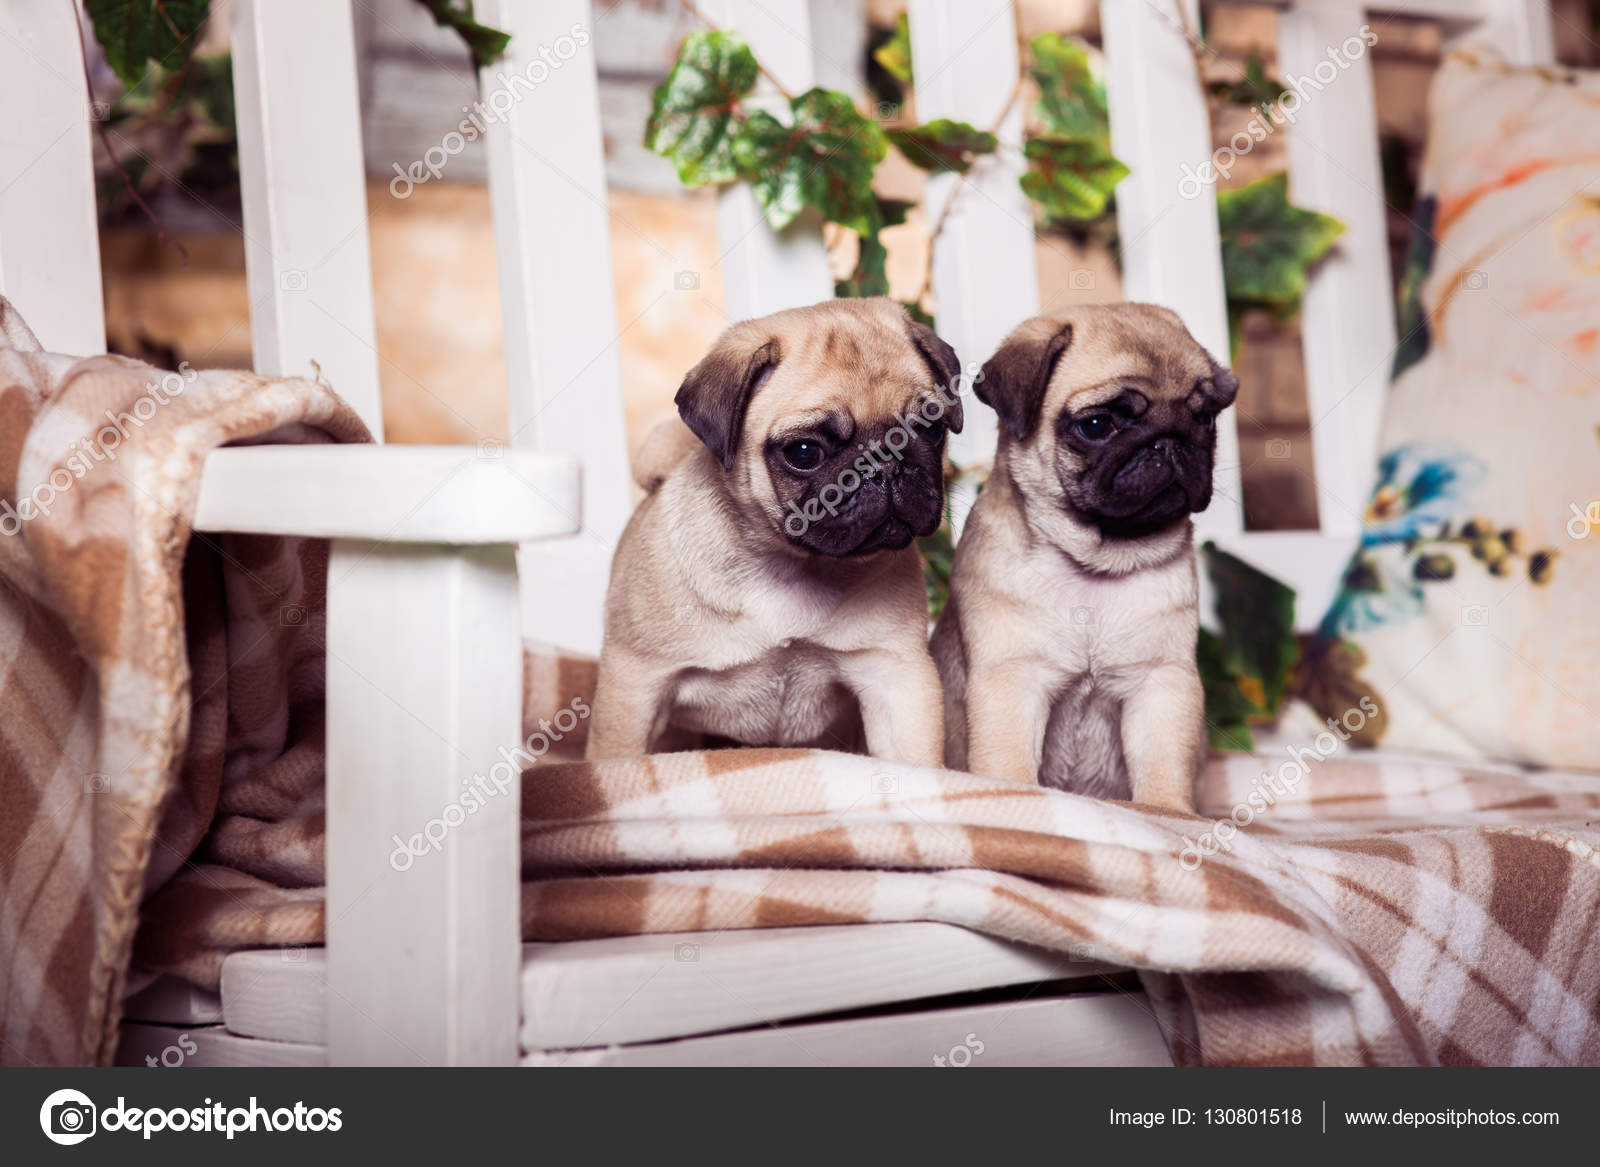 Little Beige Pug Puppies Sitting On The Bench Entwined With Ivy Stock Photo C Favorekyiv Gmail Com 130801518